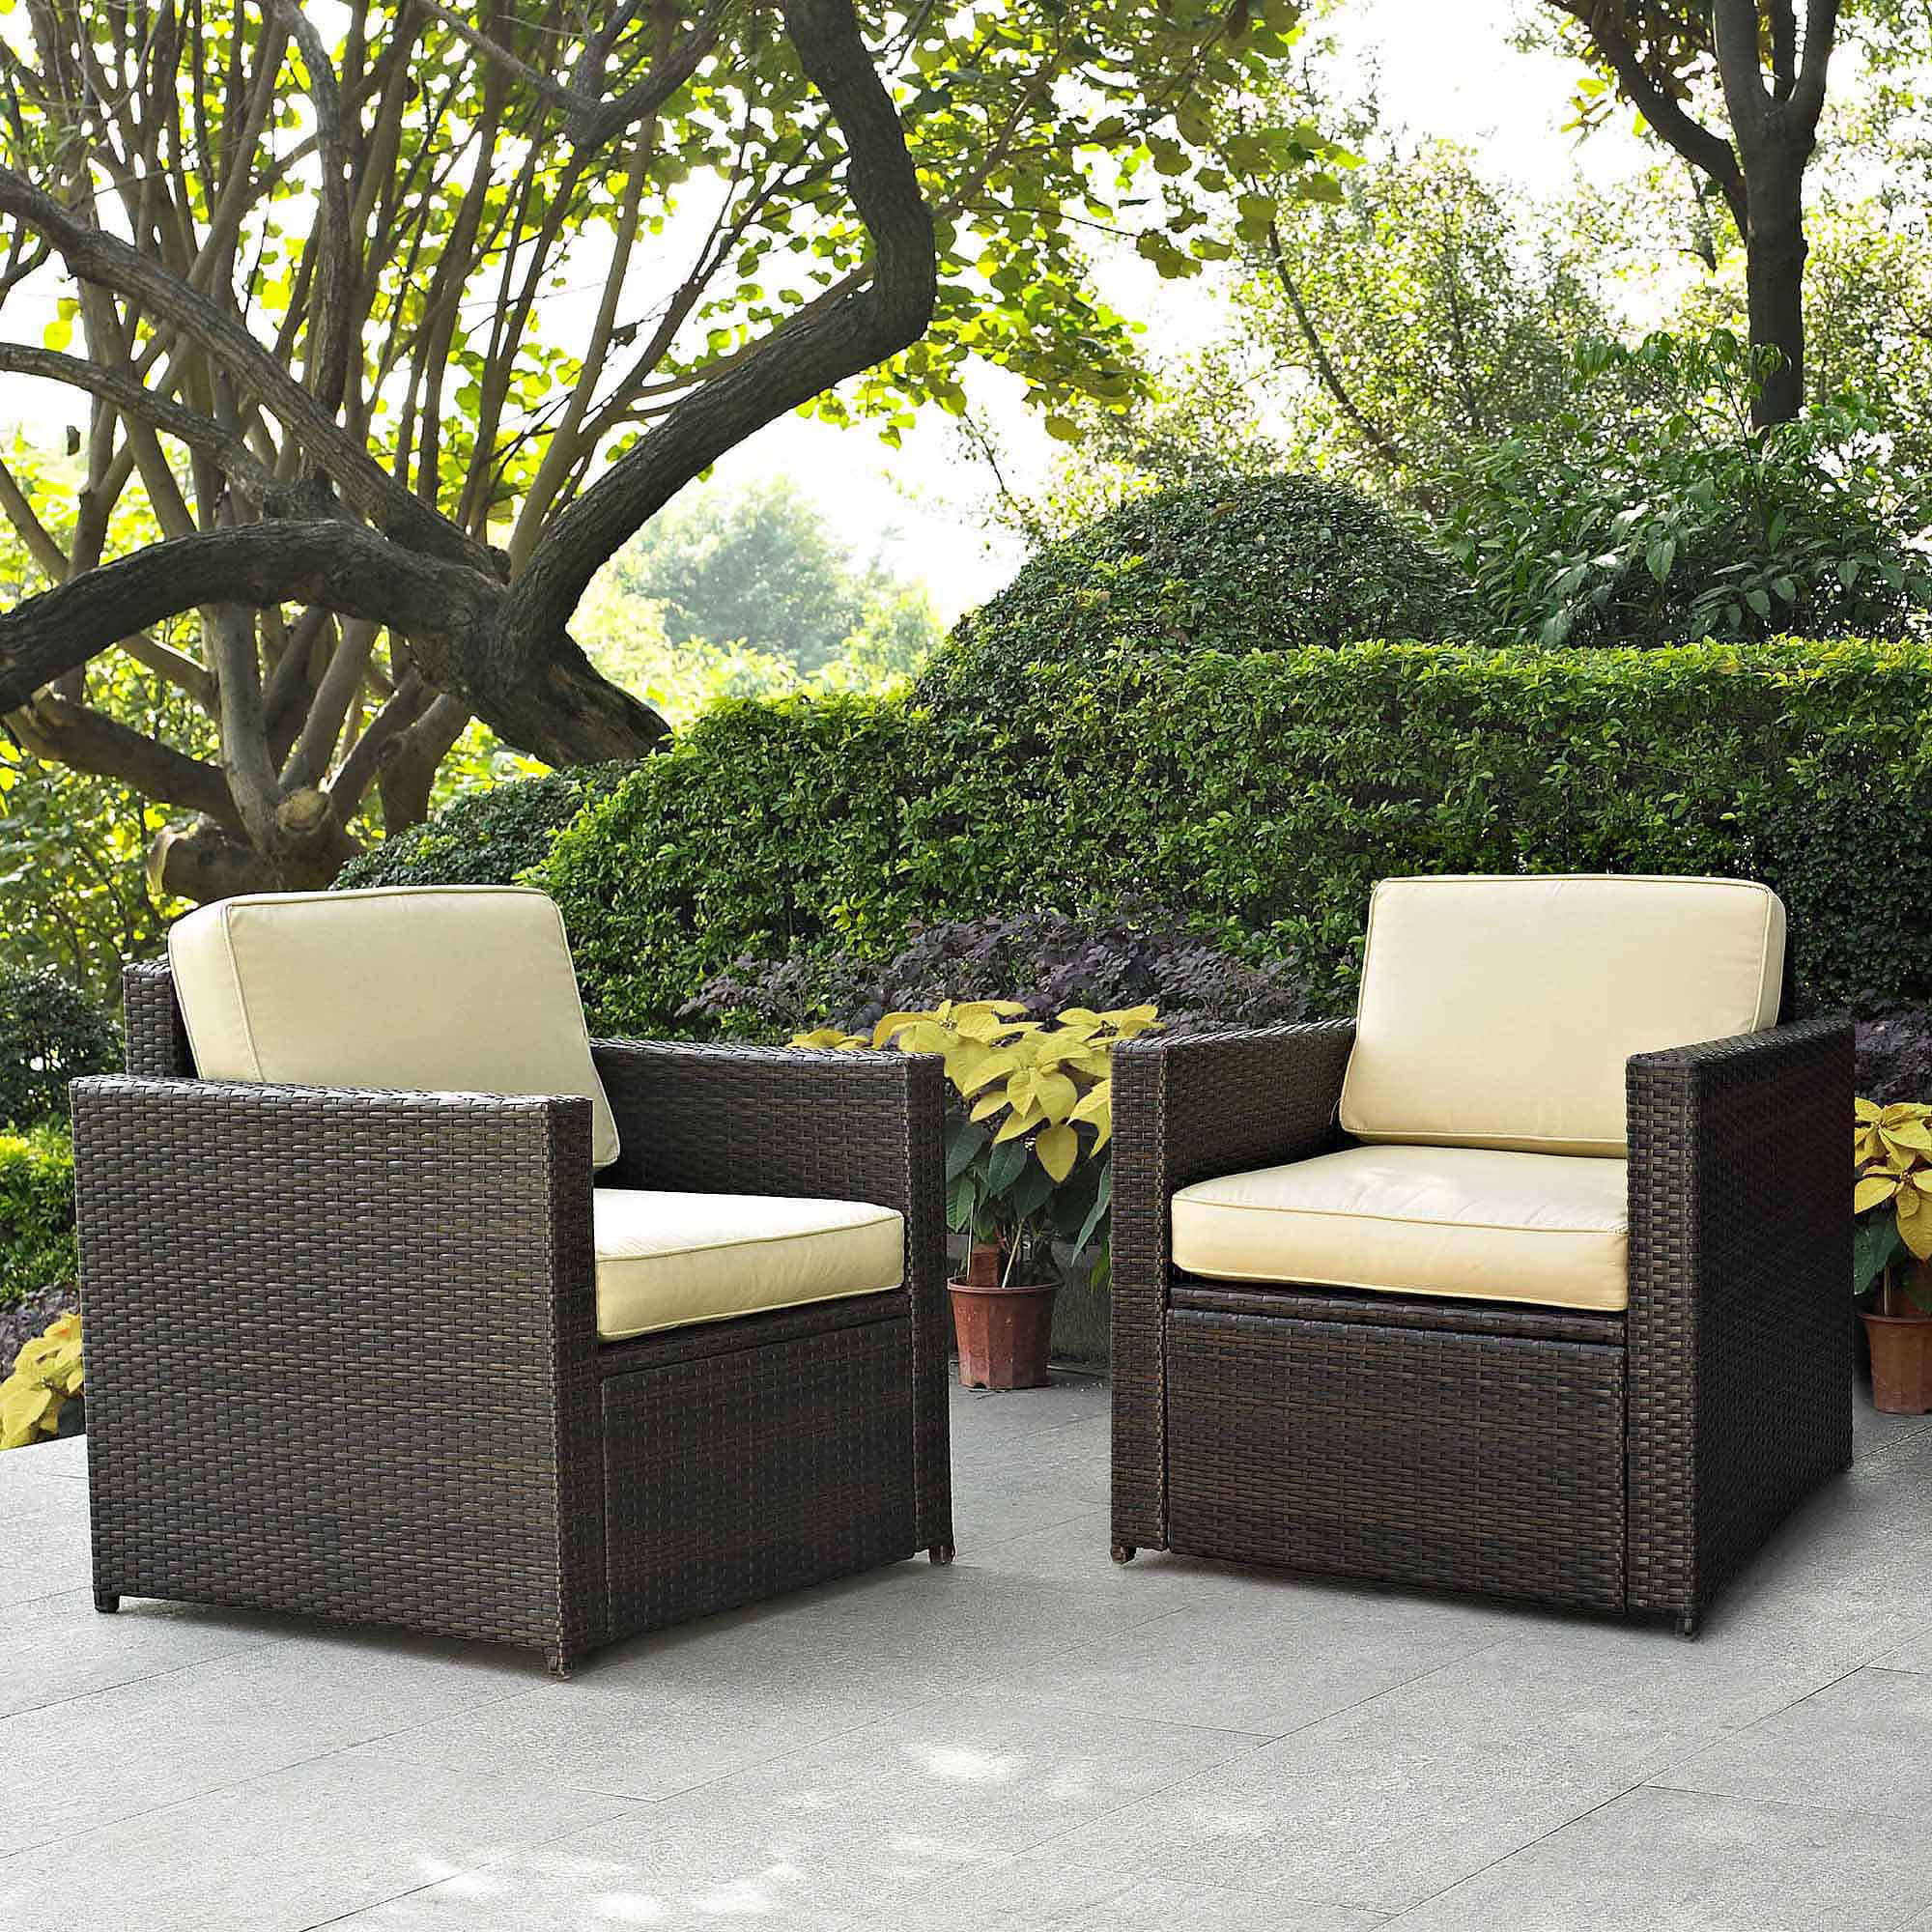 High Quality Crosley Furniture Palm Harbor 2 Piece Outdoor Wicker Seating Set    Walmart.com